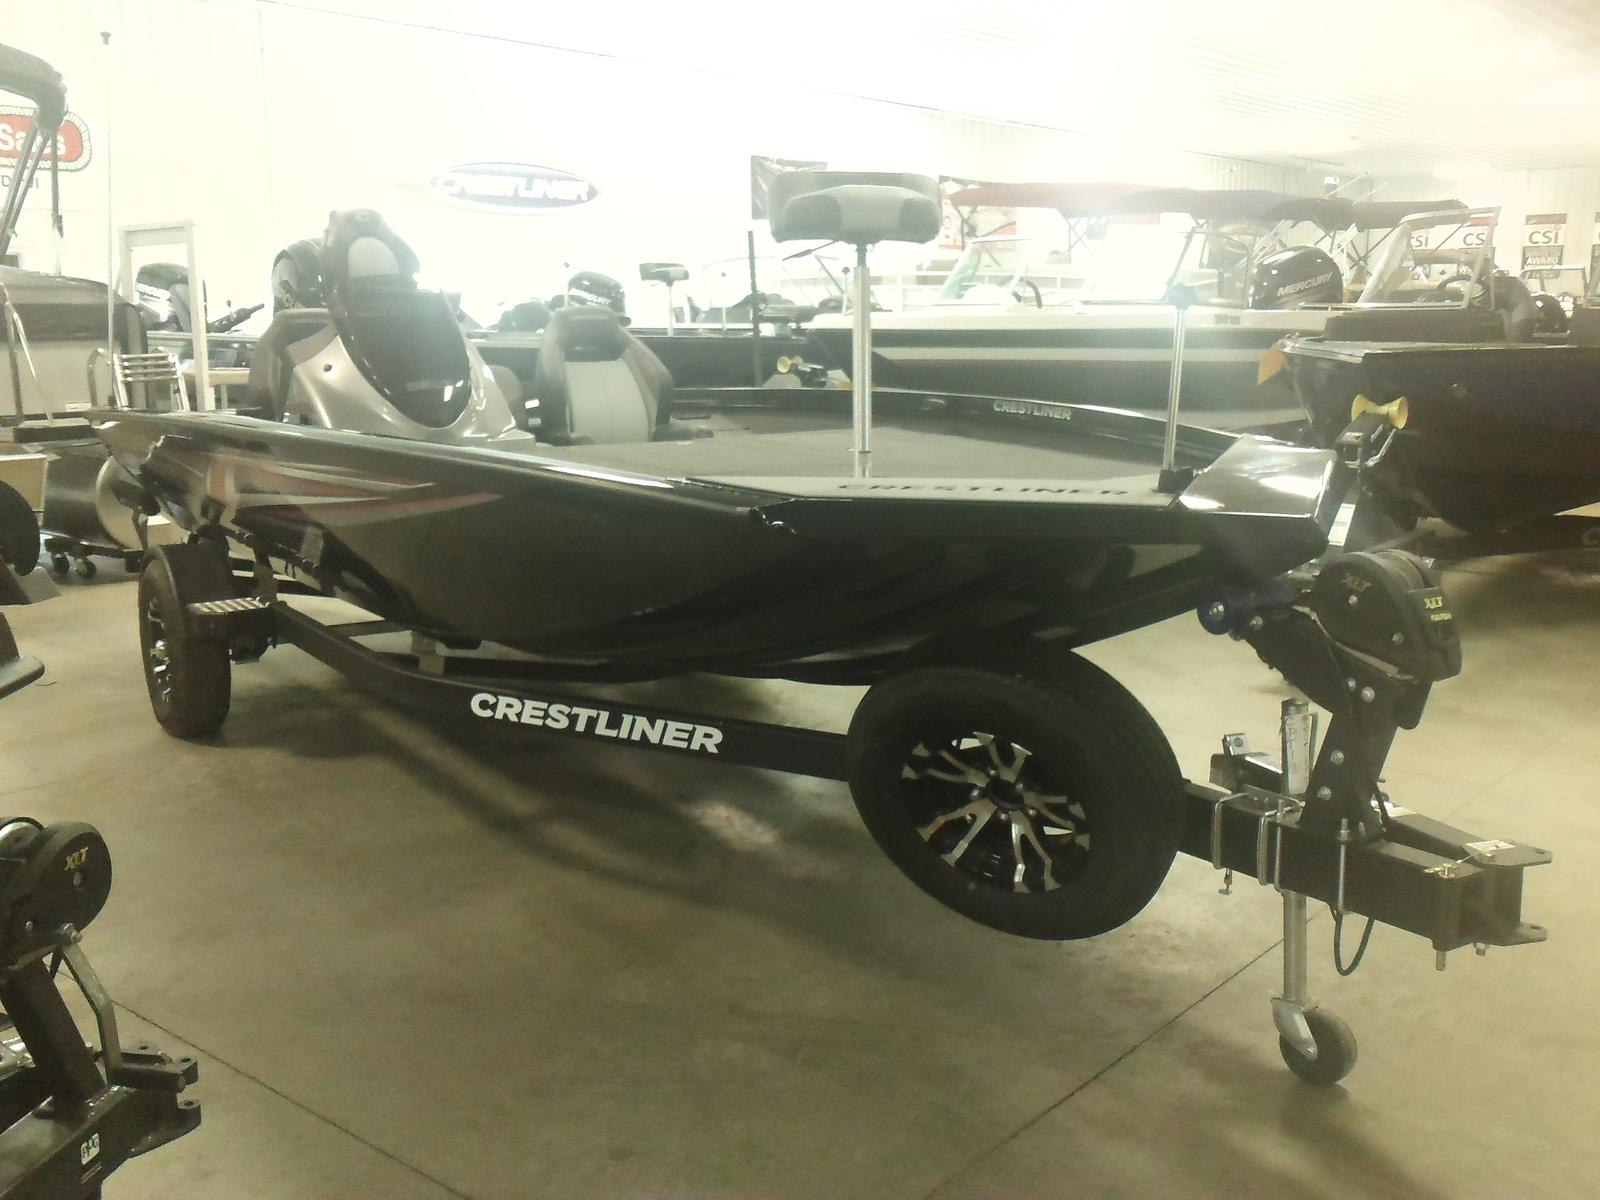 Crestliner 18 PRO TOURNAMENT